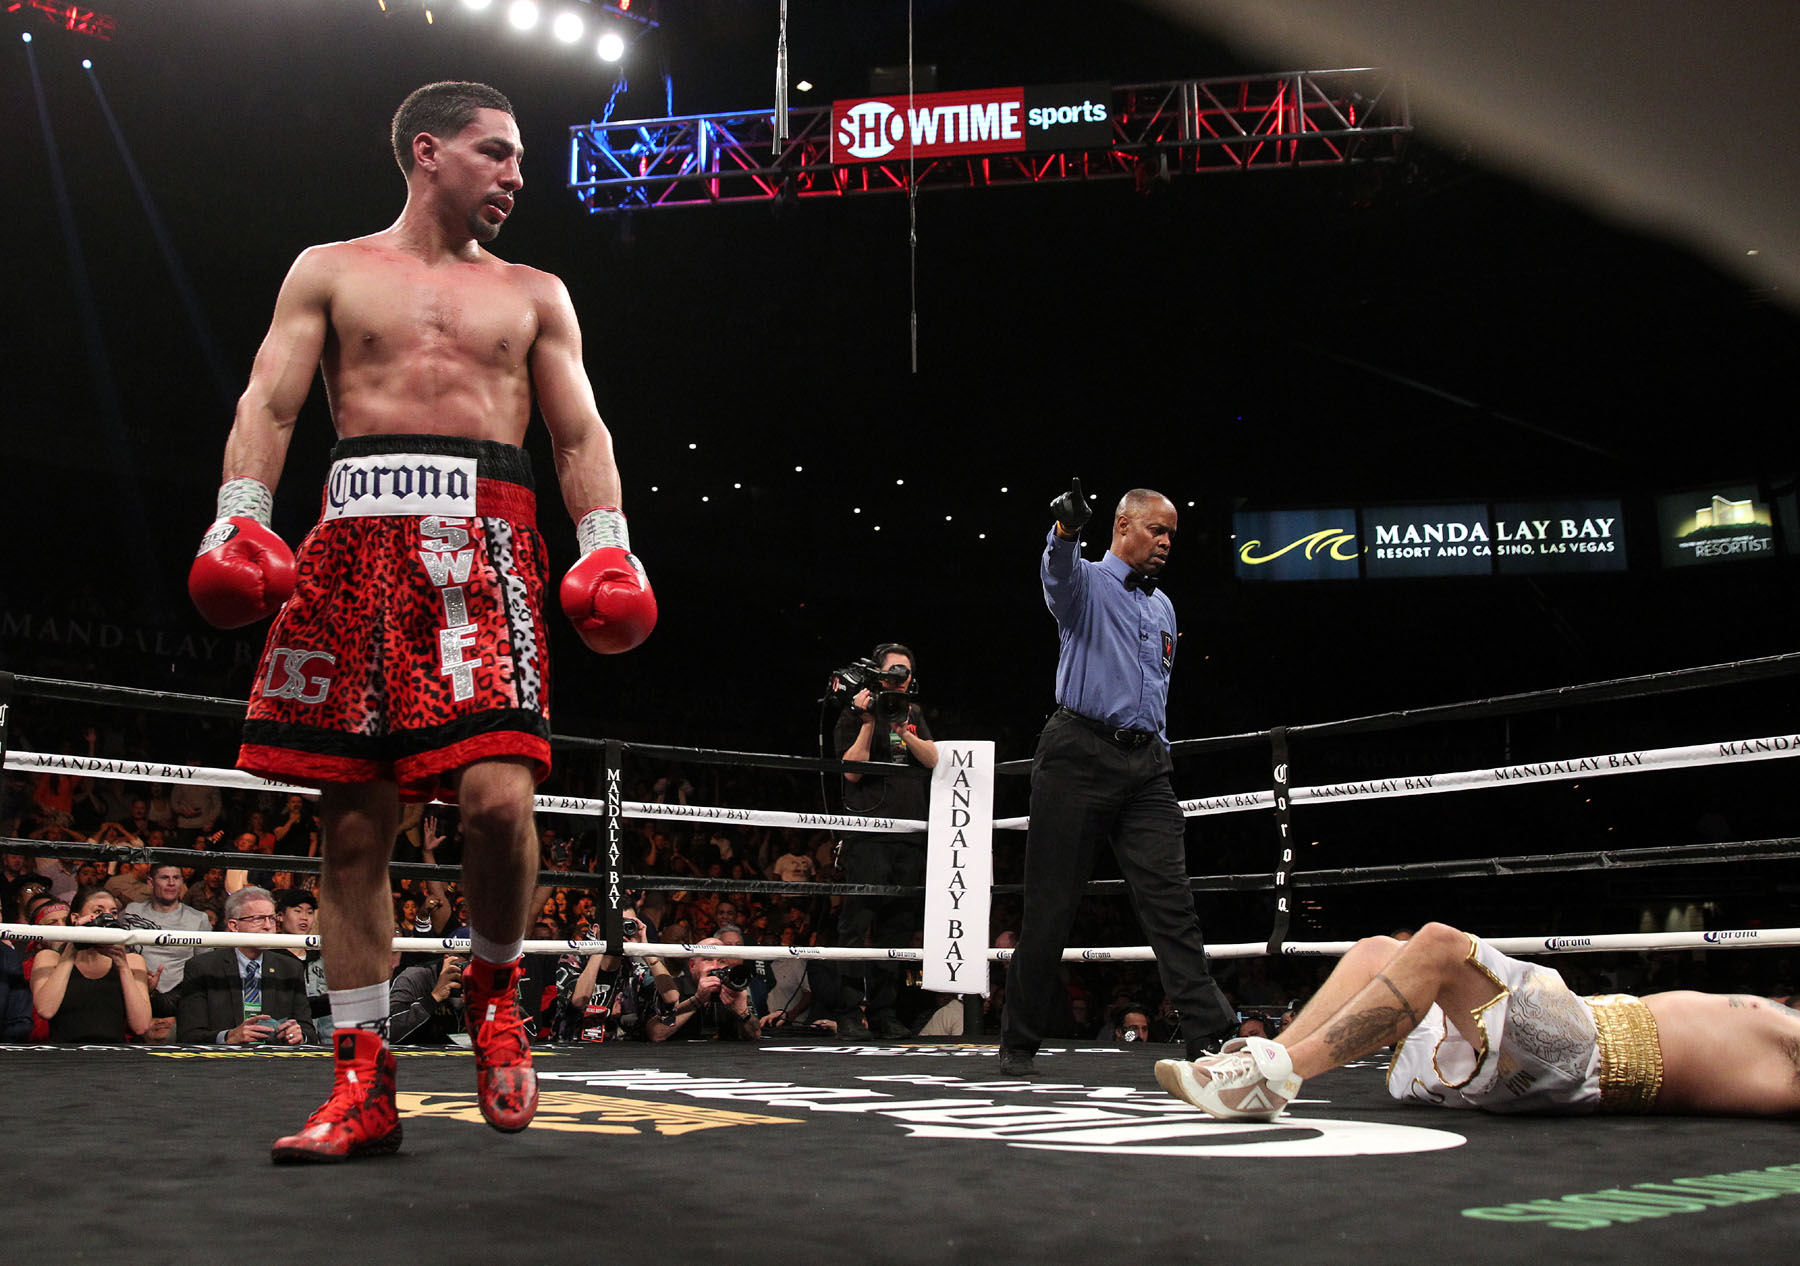 940246887ab9 Boston native, Edwin Rodriguez took on Buffalo, NY native Lionell Thompson  in a bout that went the distance. Rodriguez stuck to his game plan and was  able ...